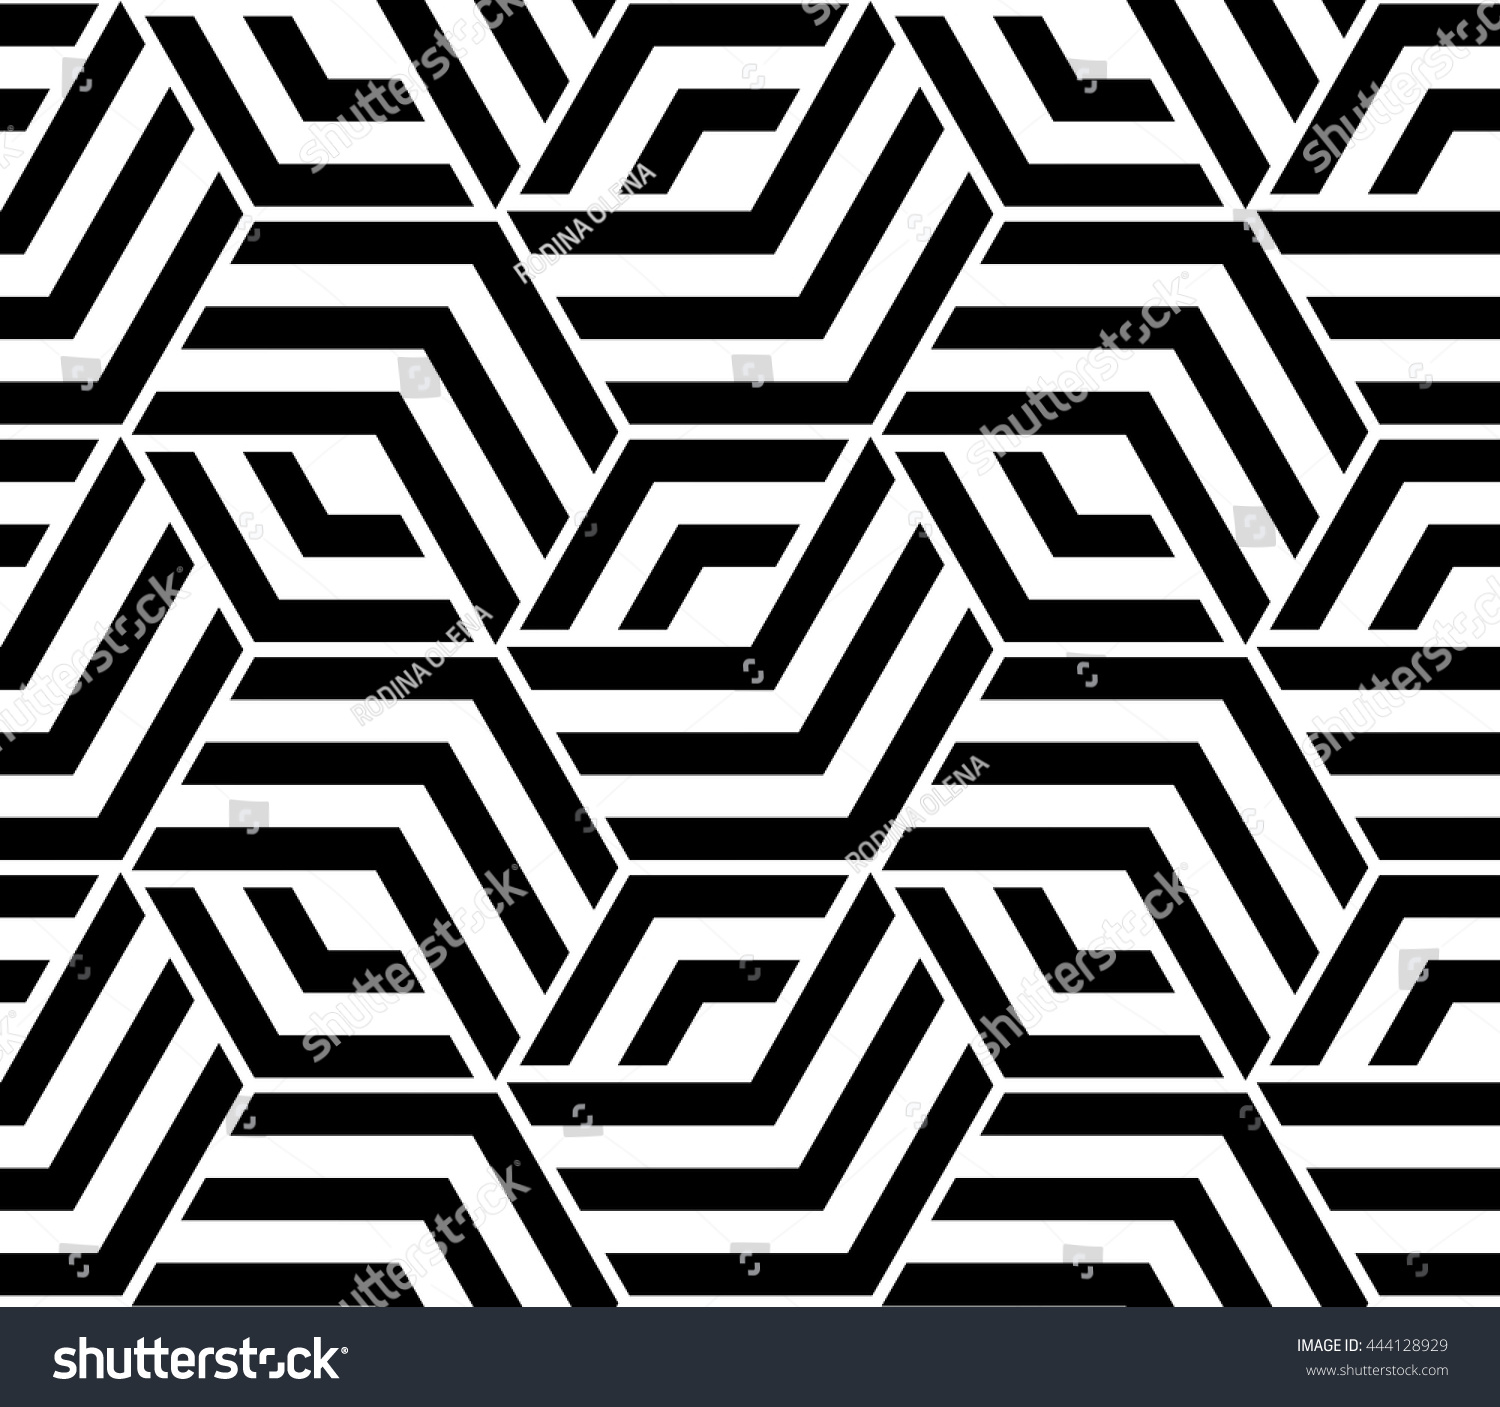 Line Texture Pattern : Abstract geometric pattern lines rhombuses seamless stock